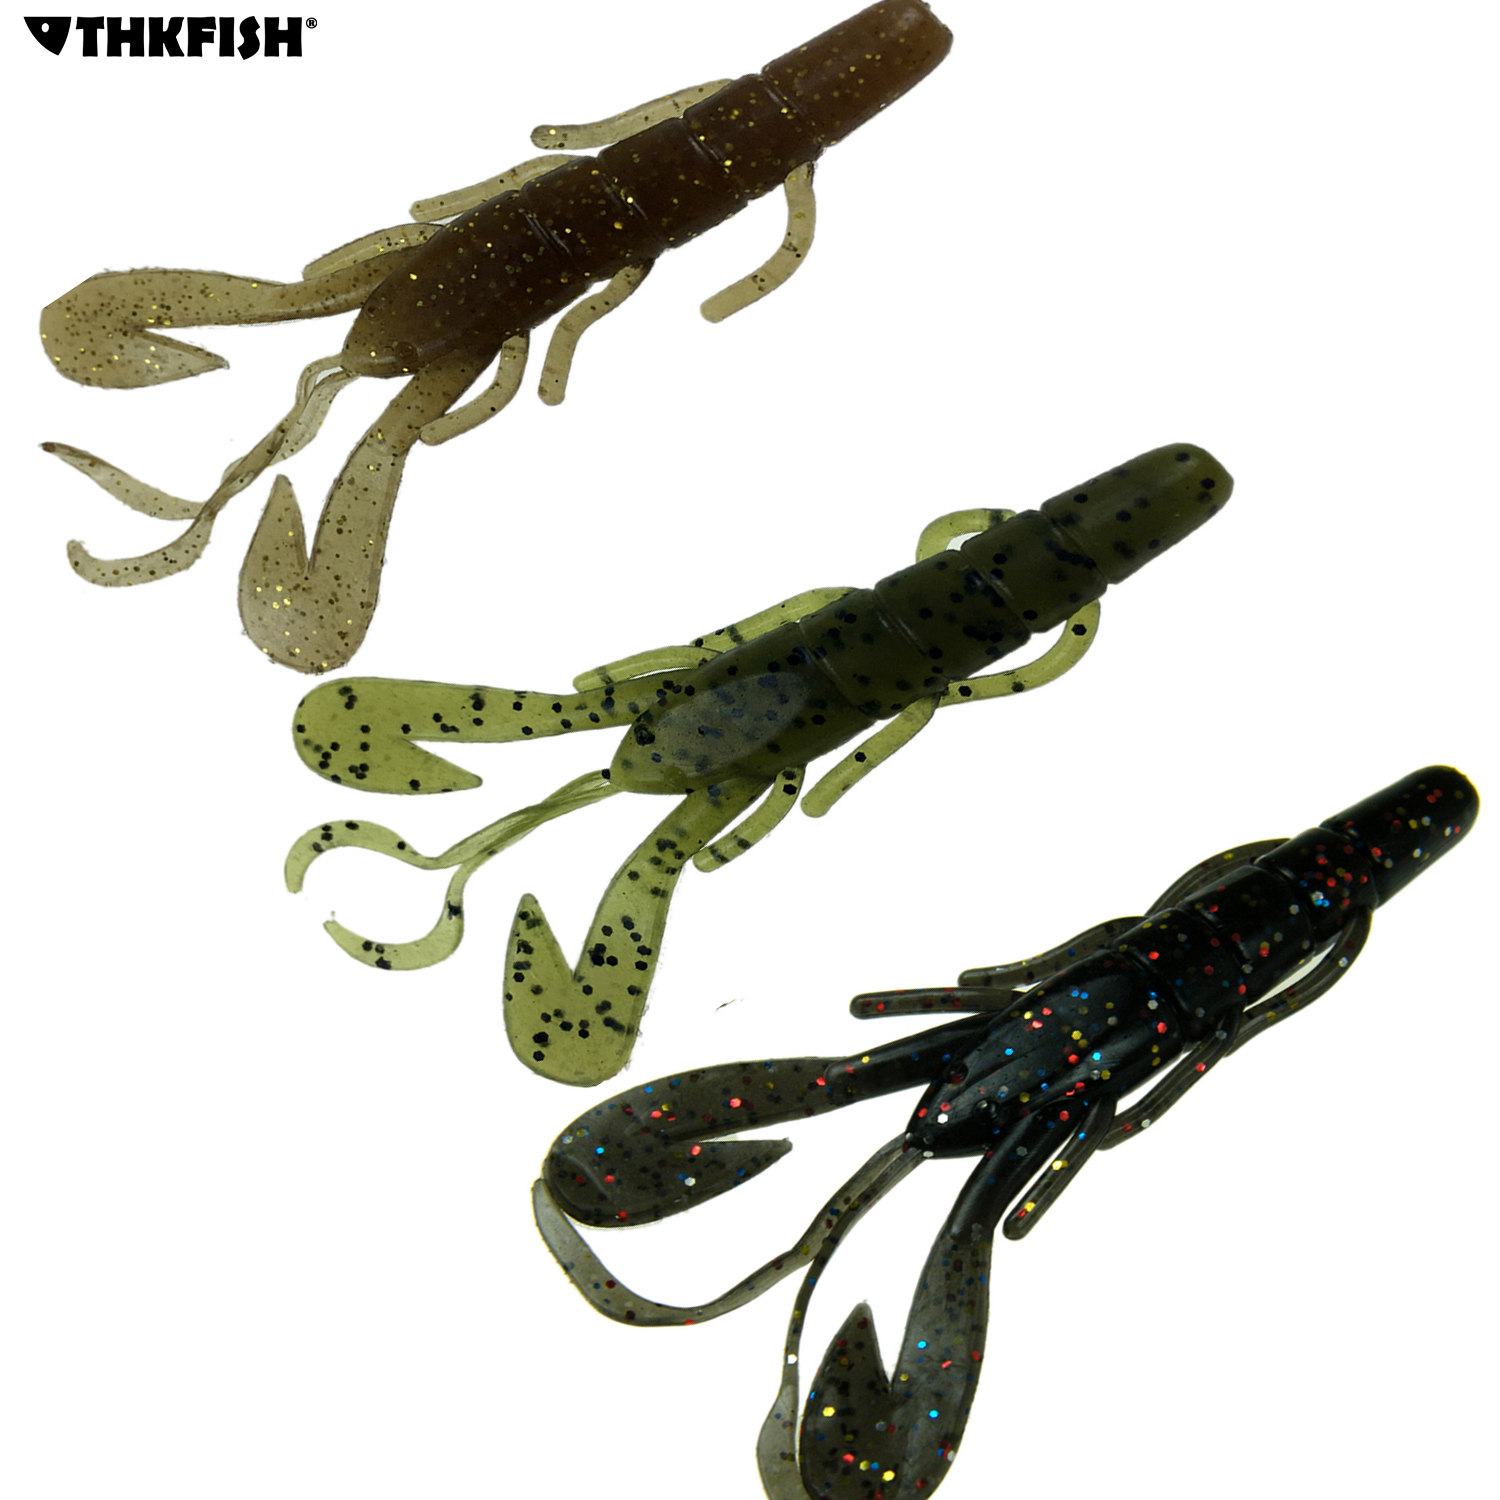 15Pcs 6g 9.5CM Soft Fishing Lures Artificial Baits Speed Craw Creature Claw Bait Trout Salmon Bass Fishing Lure Jig Trailer